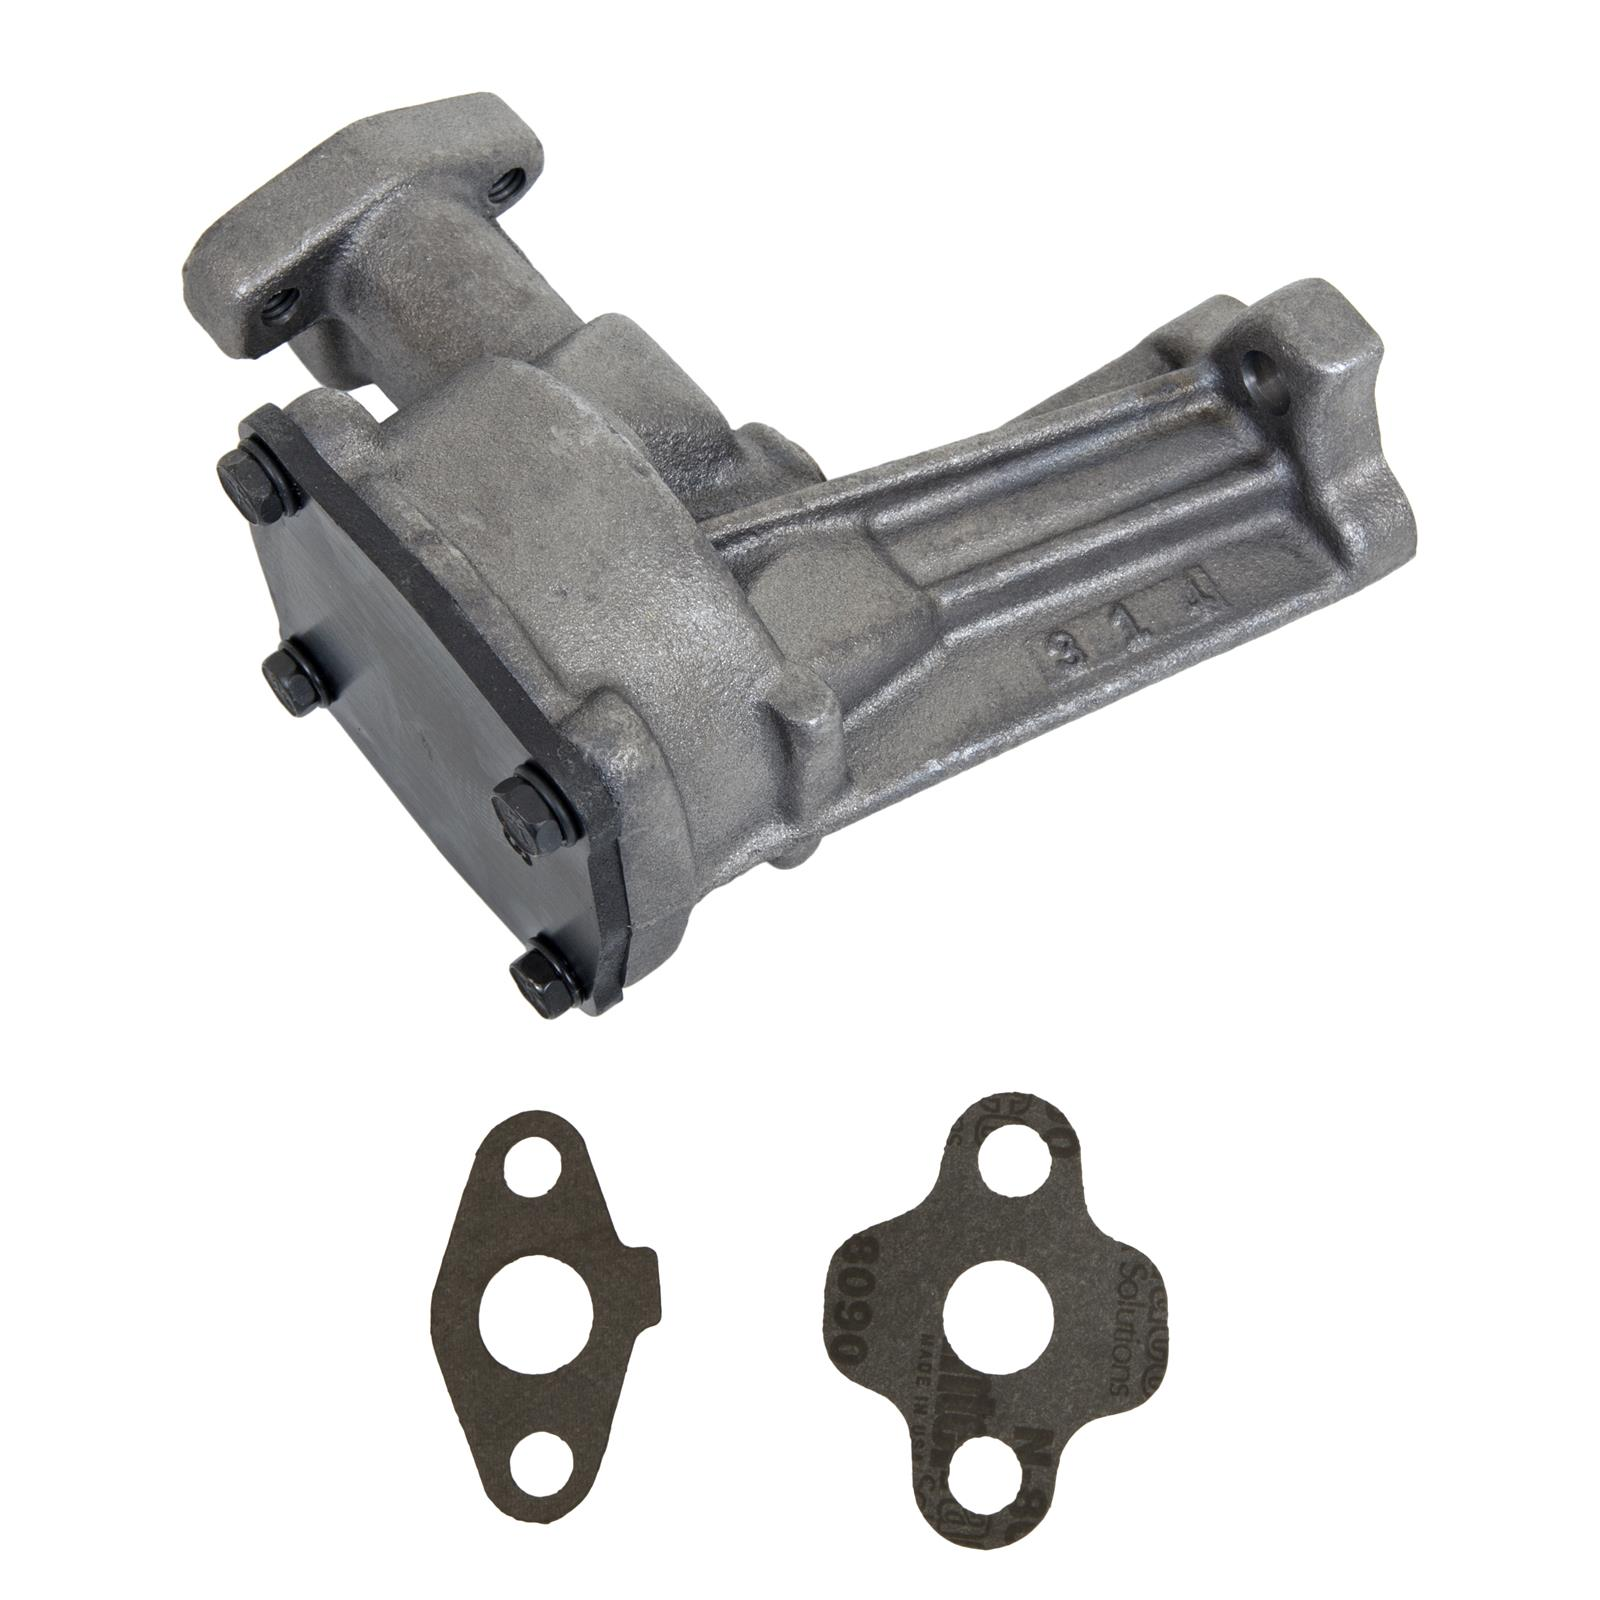 FORD PERFORMANCE MUSTANG 260 289 302 HIGH VOLUME OIL PUMP M-6600-D2